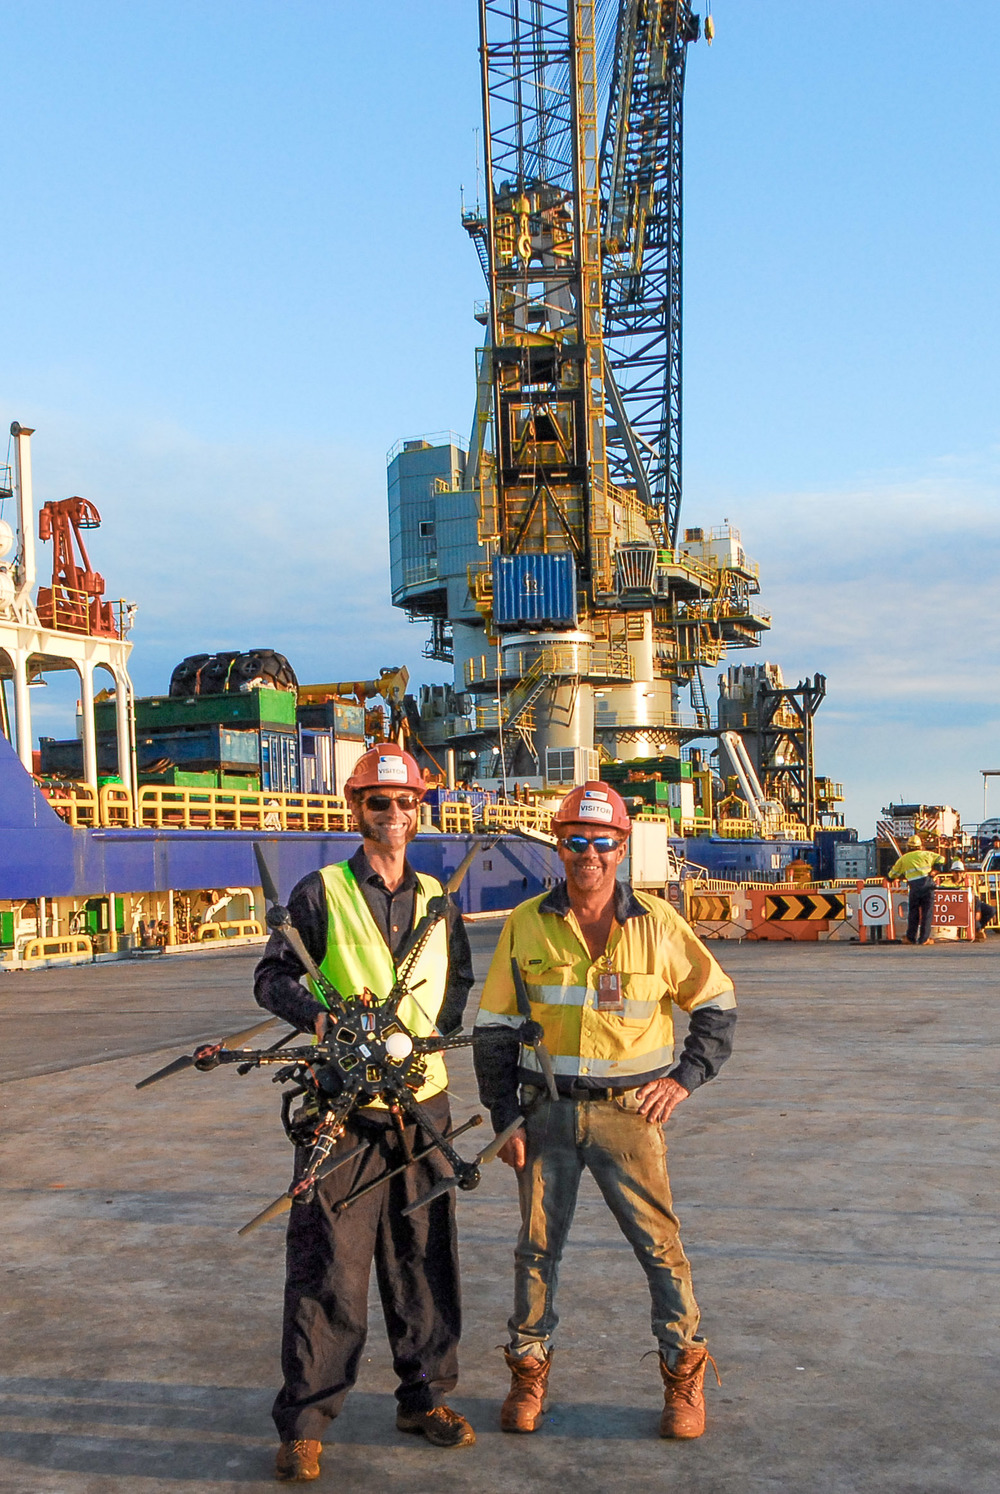 Damien and Matt from Boab UAS on site for a job at the Kimberley Ports wharf in Broome. The drone pictured there is an s800, a professional drone giving great images!